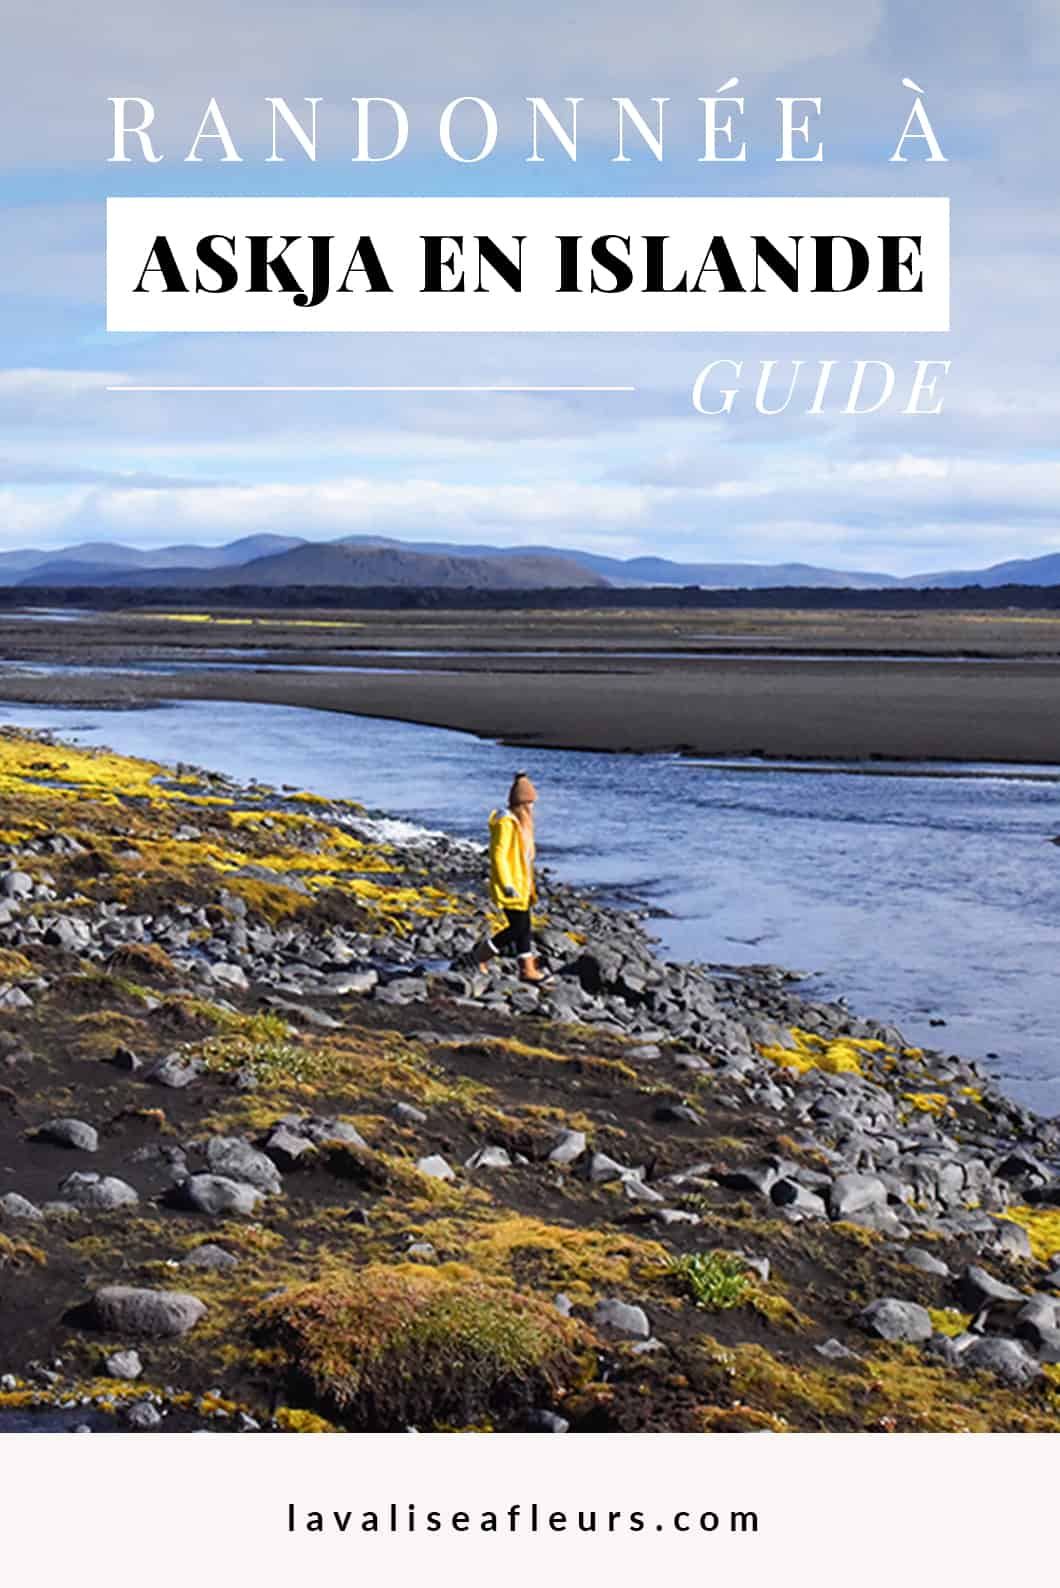 Guide de l'excursion à Askja au centre de l'Islande